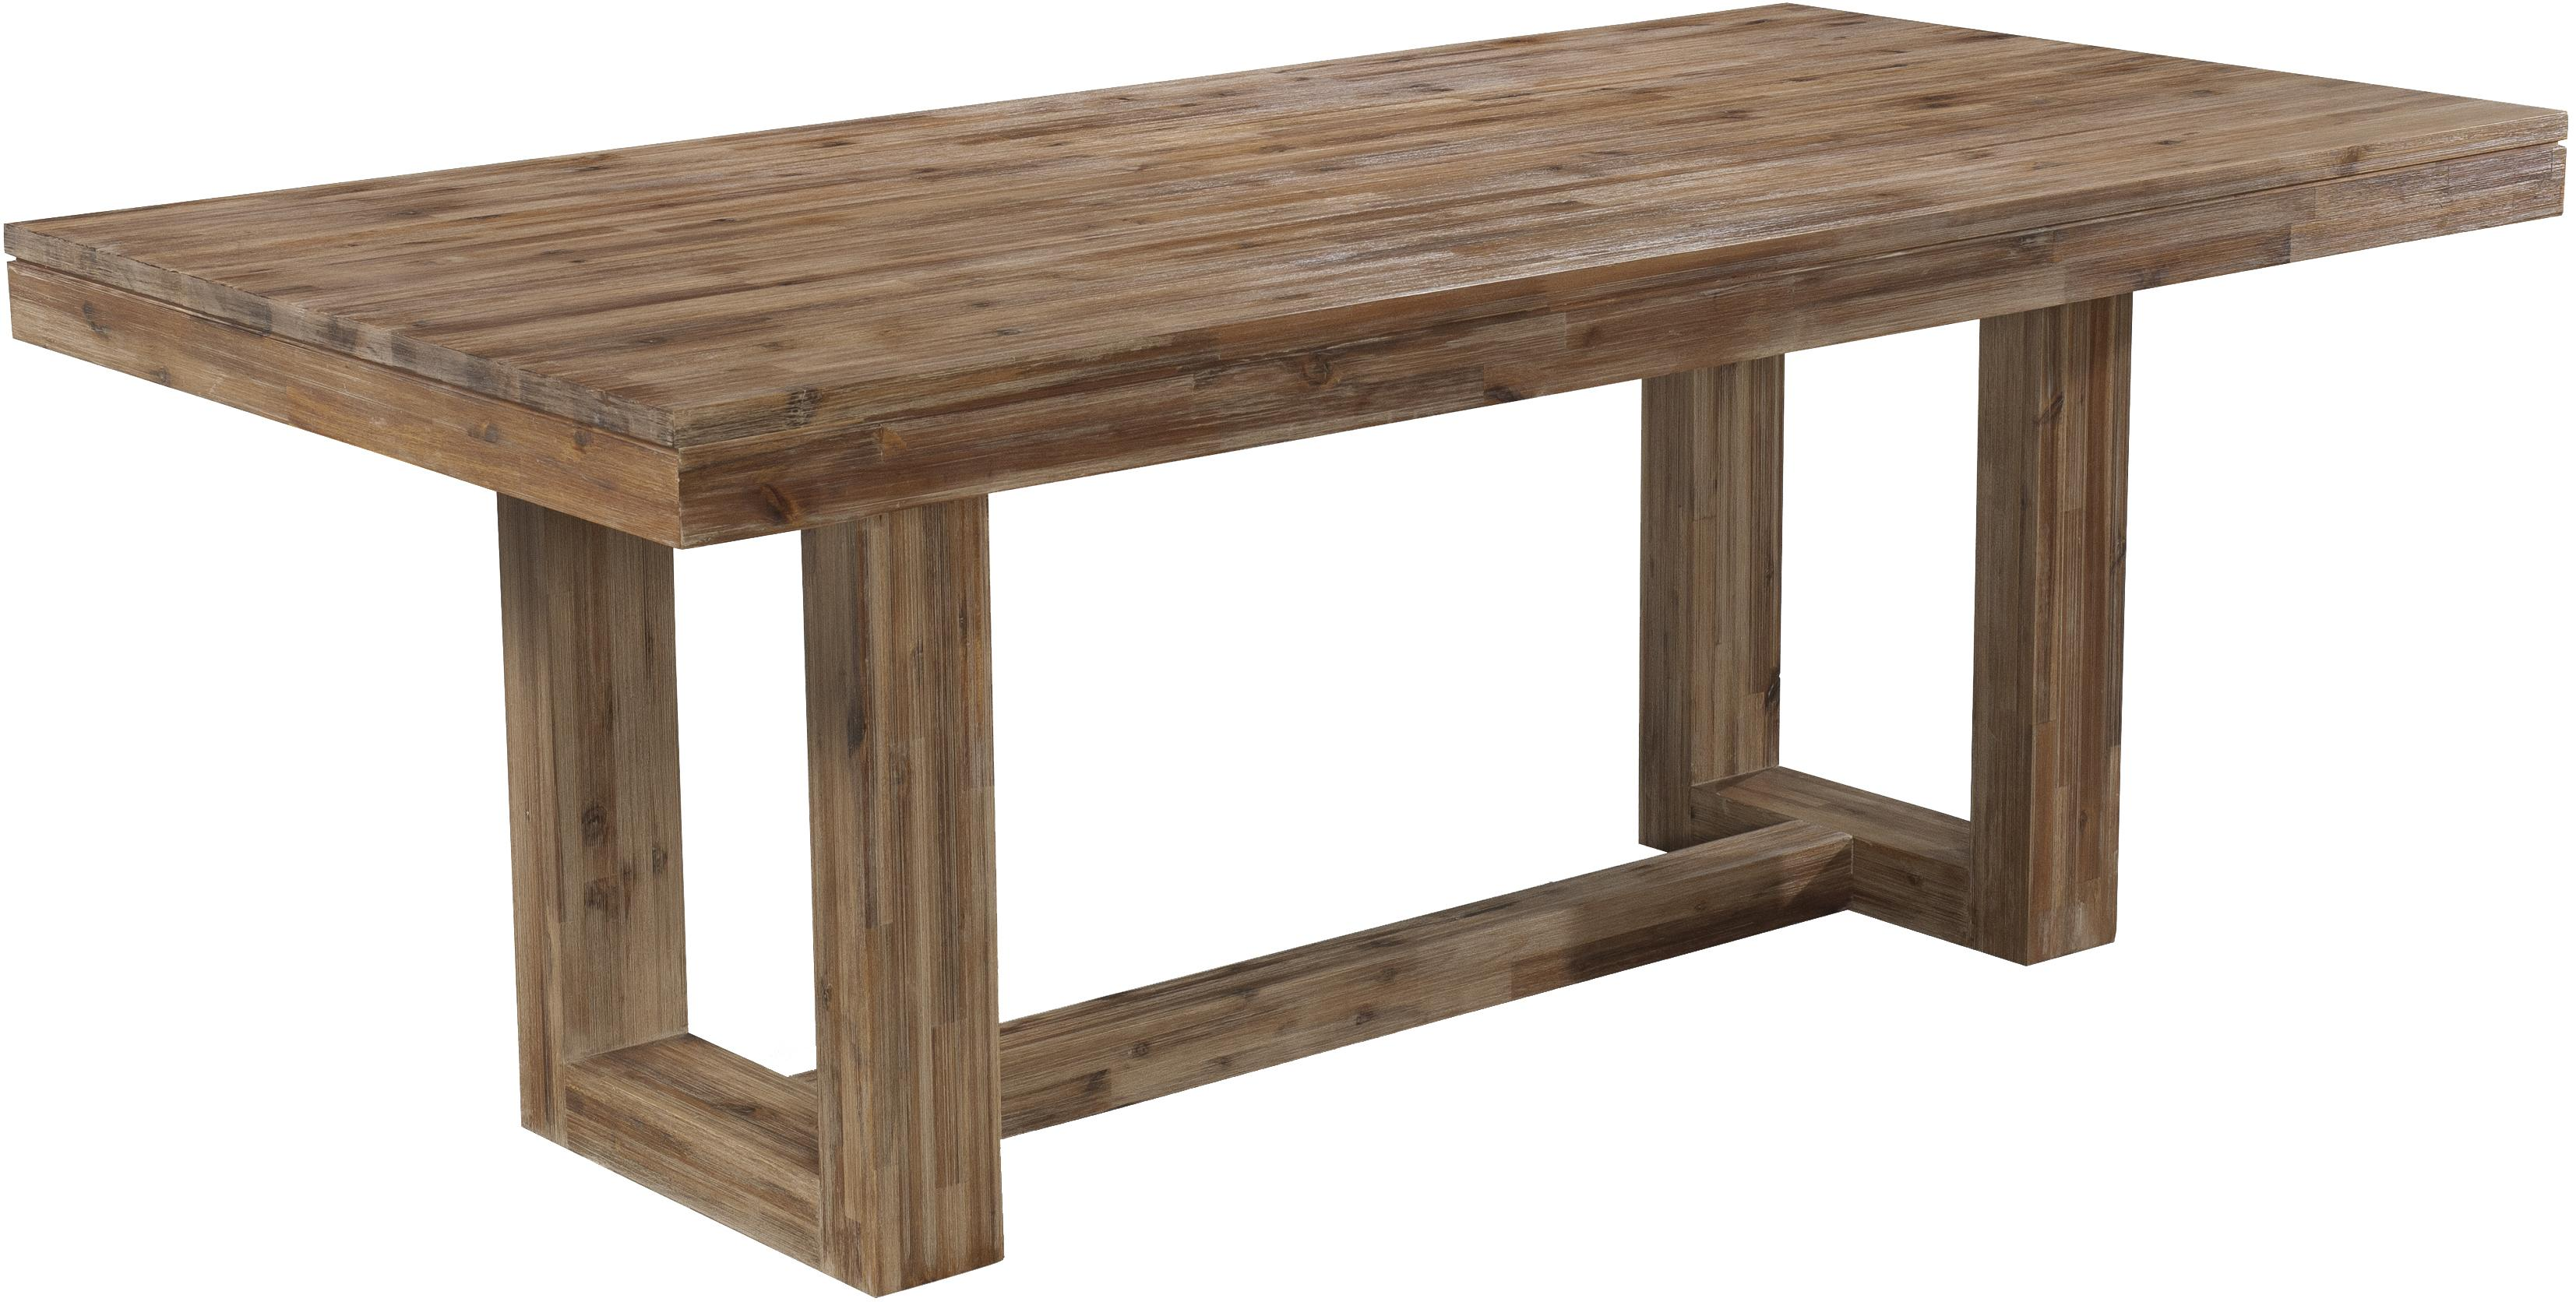 rectangle kitchen table Modern Rectangular Dining Table with Rustic Trestle Base